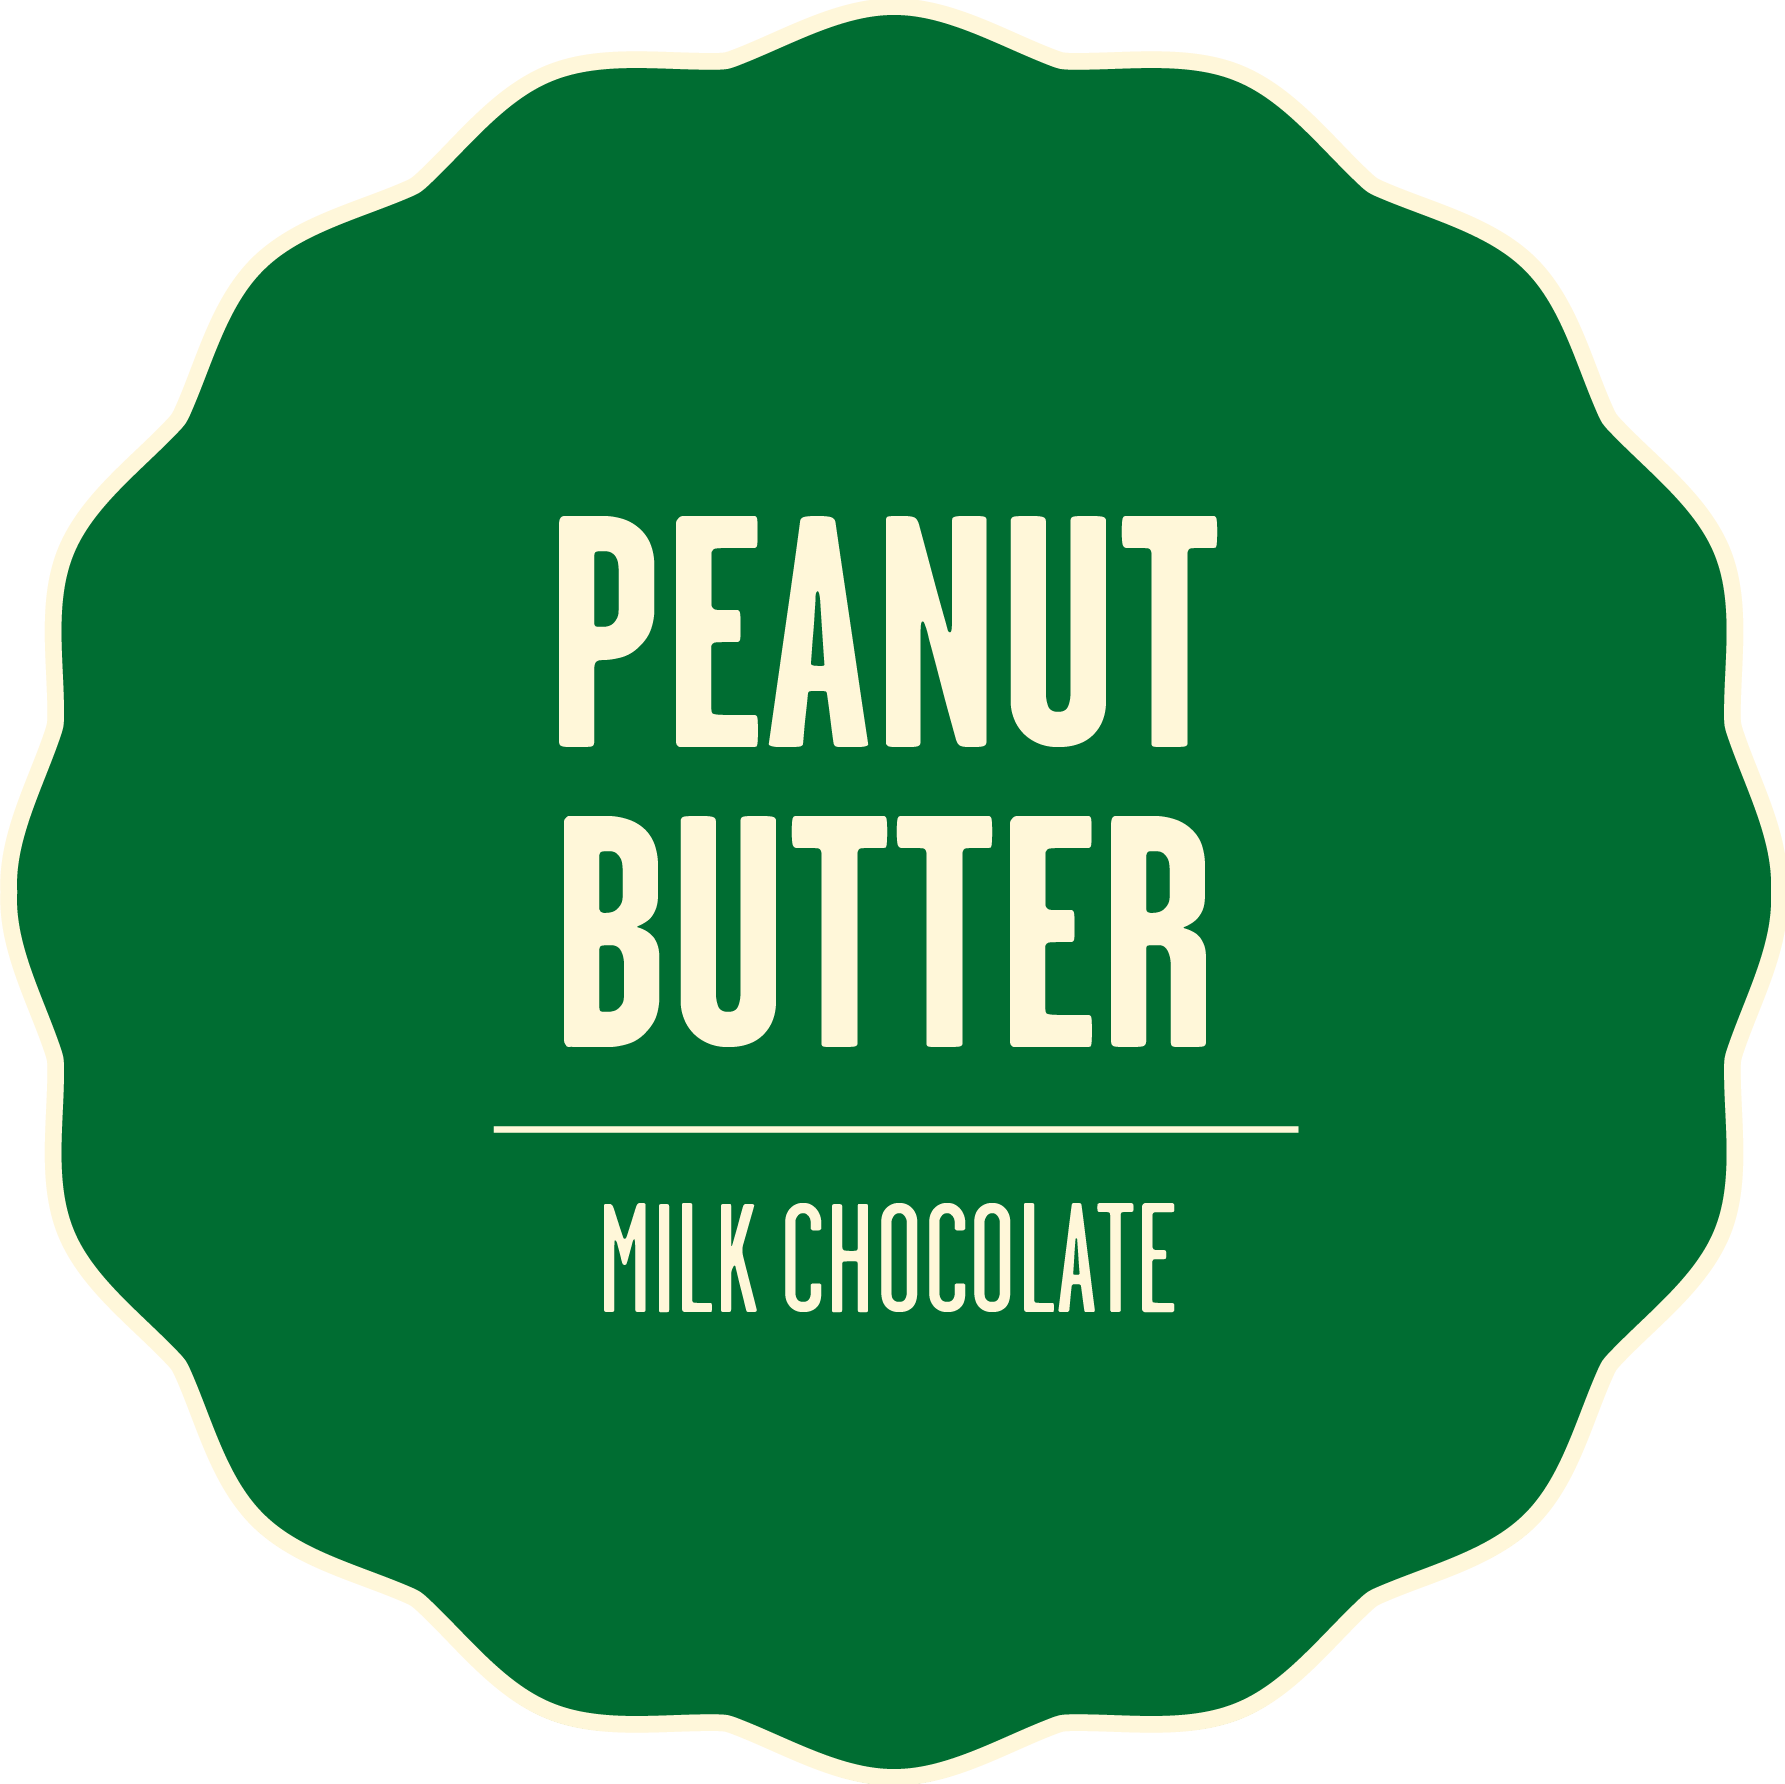 Milk chocolate peanut butter 2x